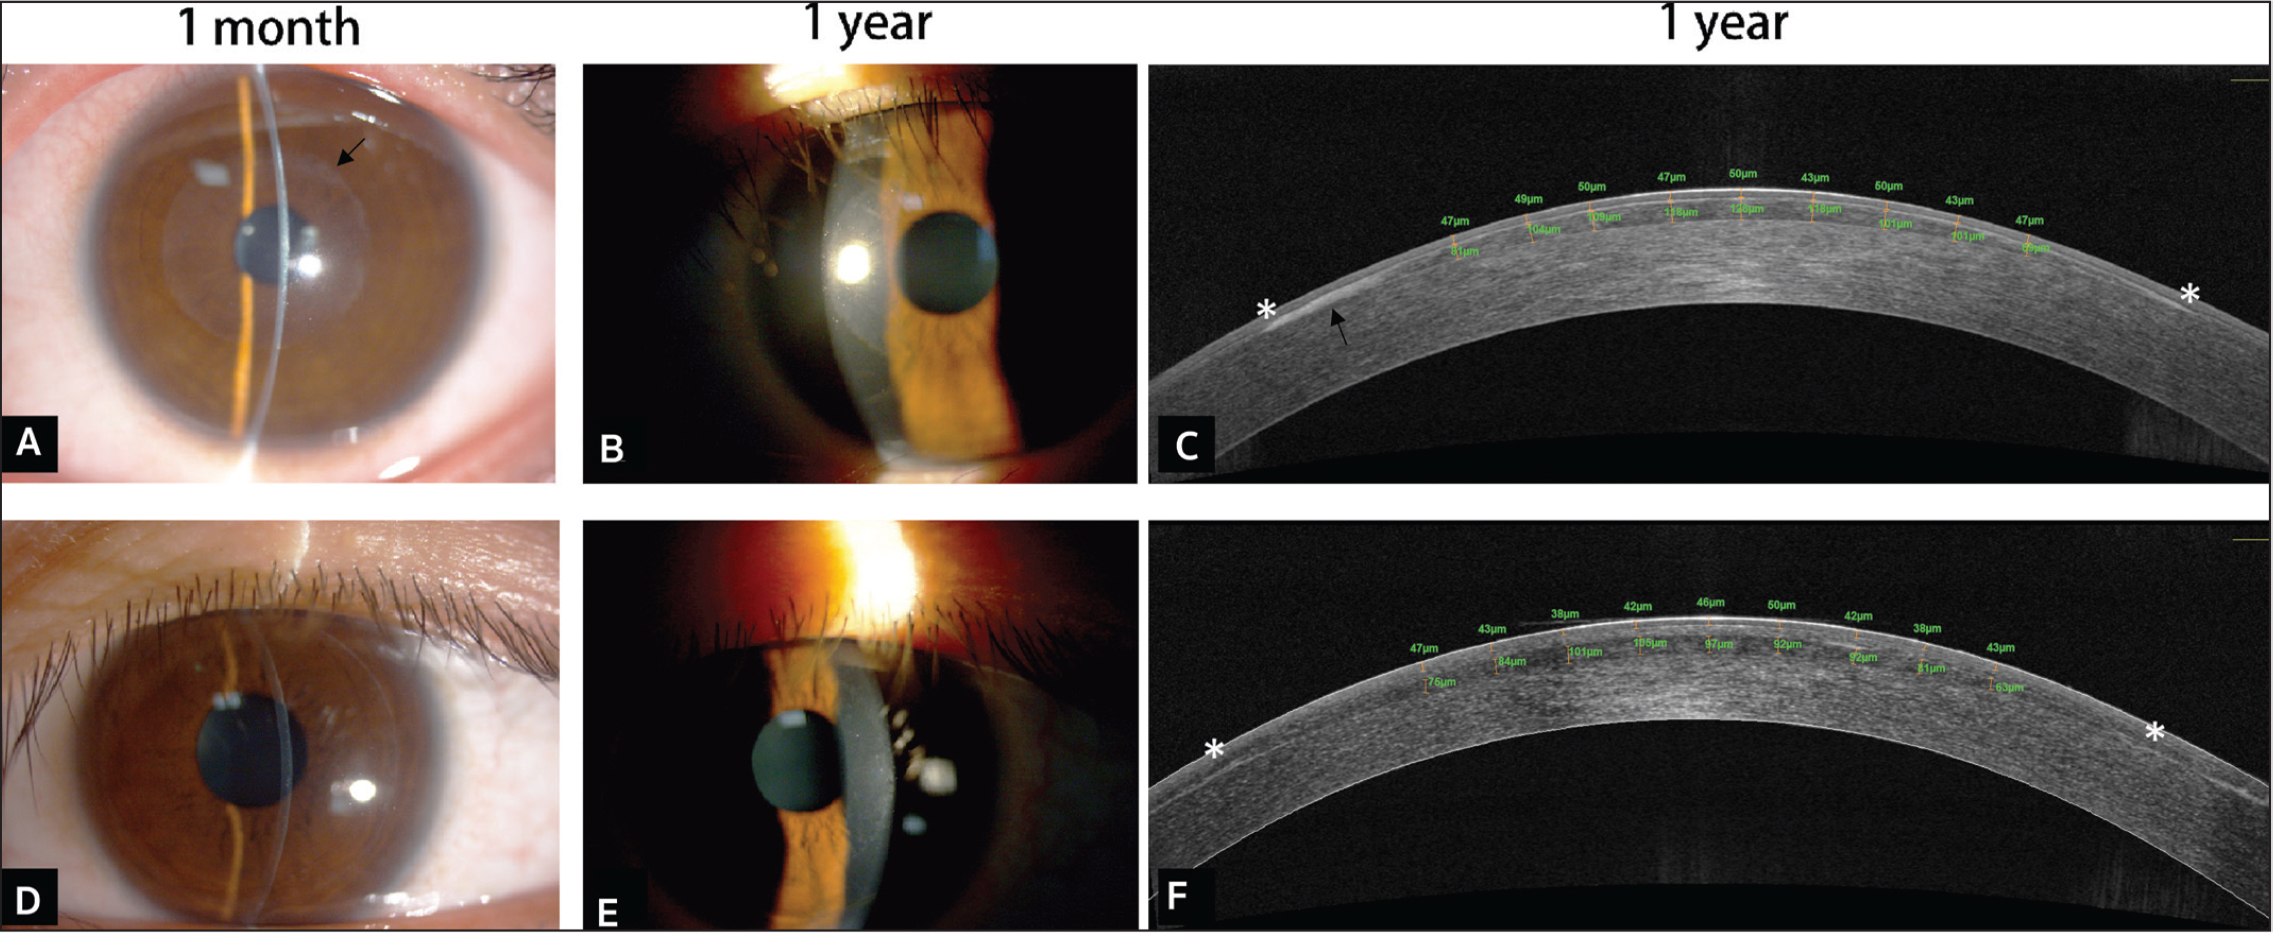 The top row shows the slit-lamp photography (A) 1 month and (B) 1 year after transepithelial phototherapeutic keratectomy (PTK-EP) and (C) an anterior segment optical coherence tomography (AS-OCT) B-scan 1 year after PTK-EP for eye 3. The black arrows show epithelial ingrowth at the margin of lenticule (A and C). The bottom row shows the slit-lamp photography (D) 1 month and (E) 1 year after PTK-EP and (F) an AS-OCT B-scan 1 year after PTK-EP for eye 5. The * highlights the edge of the lenticule in AS-OCT.